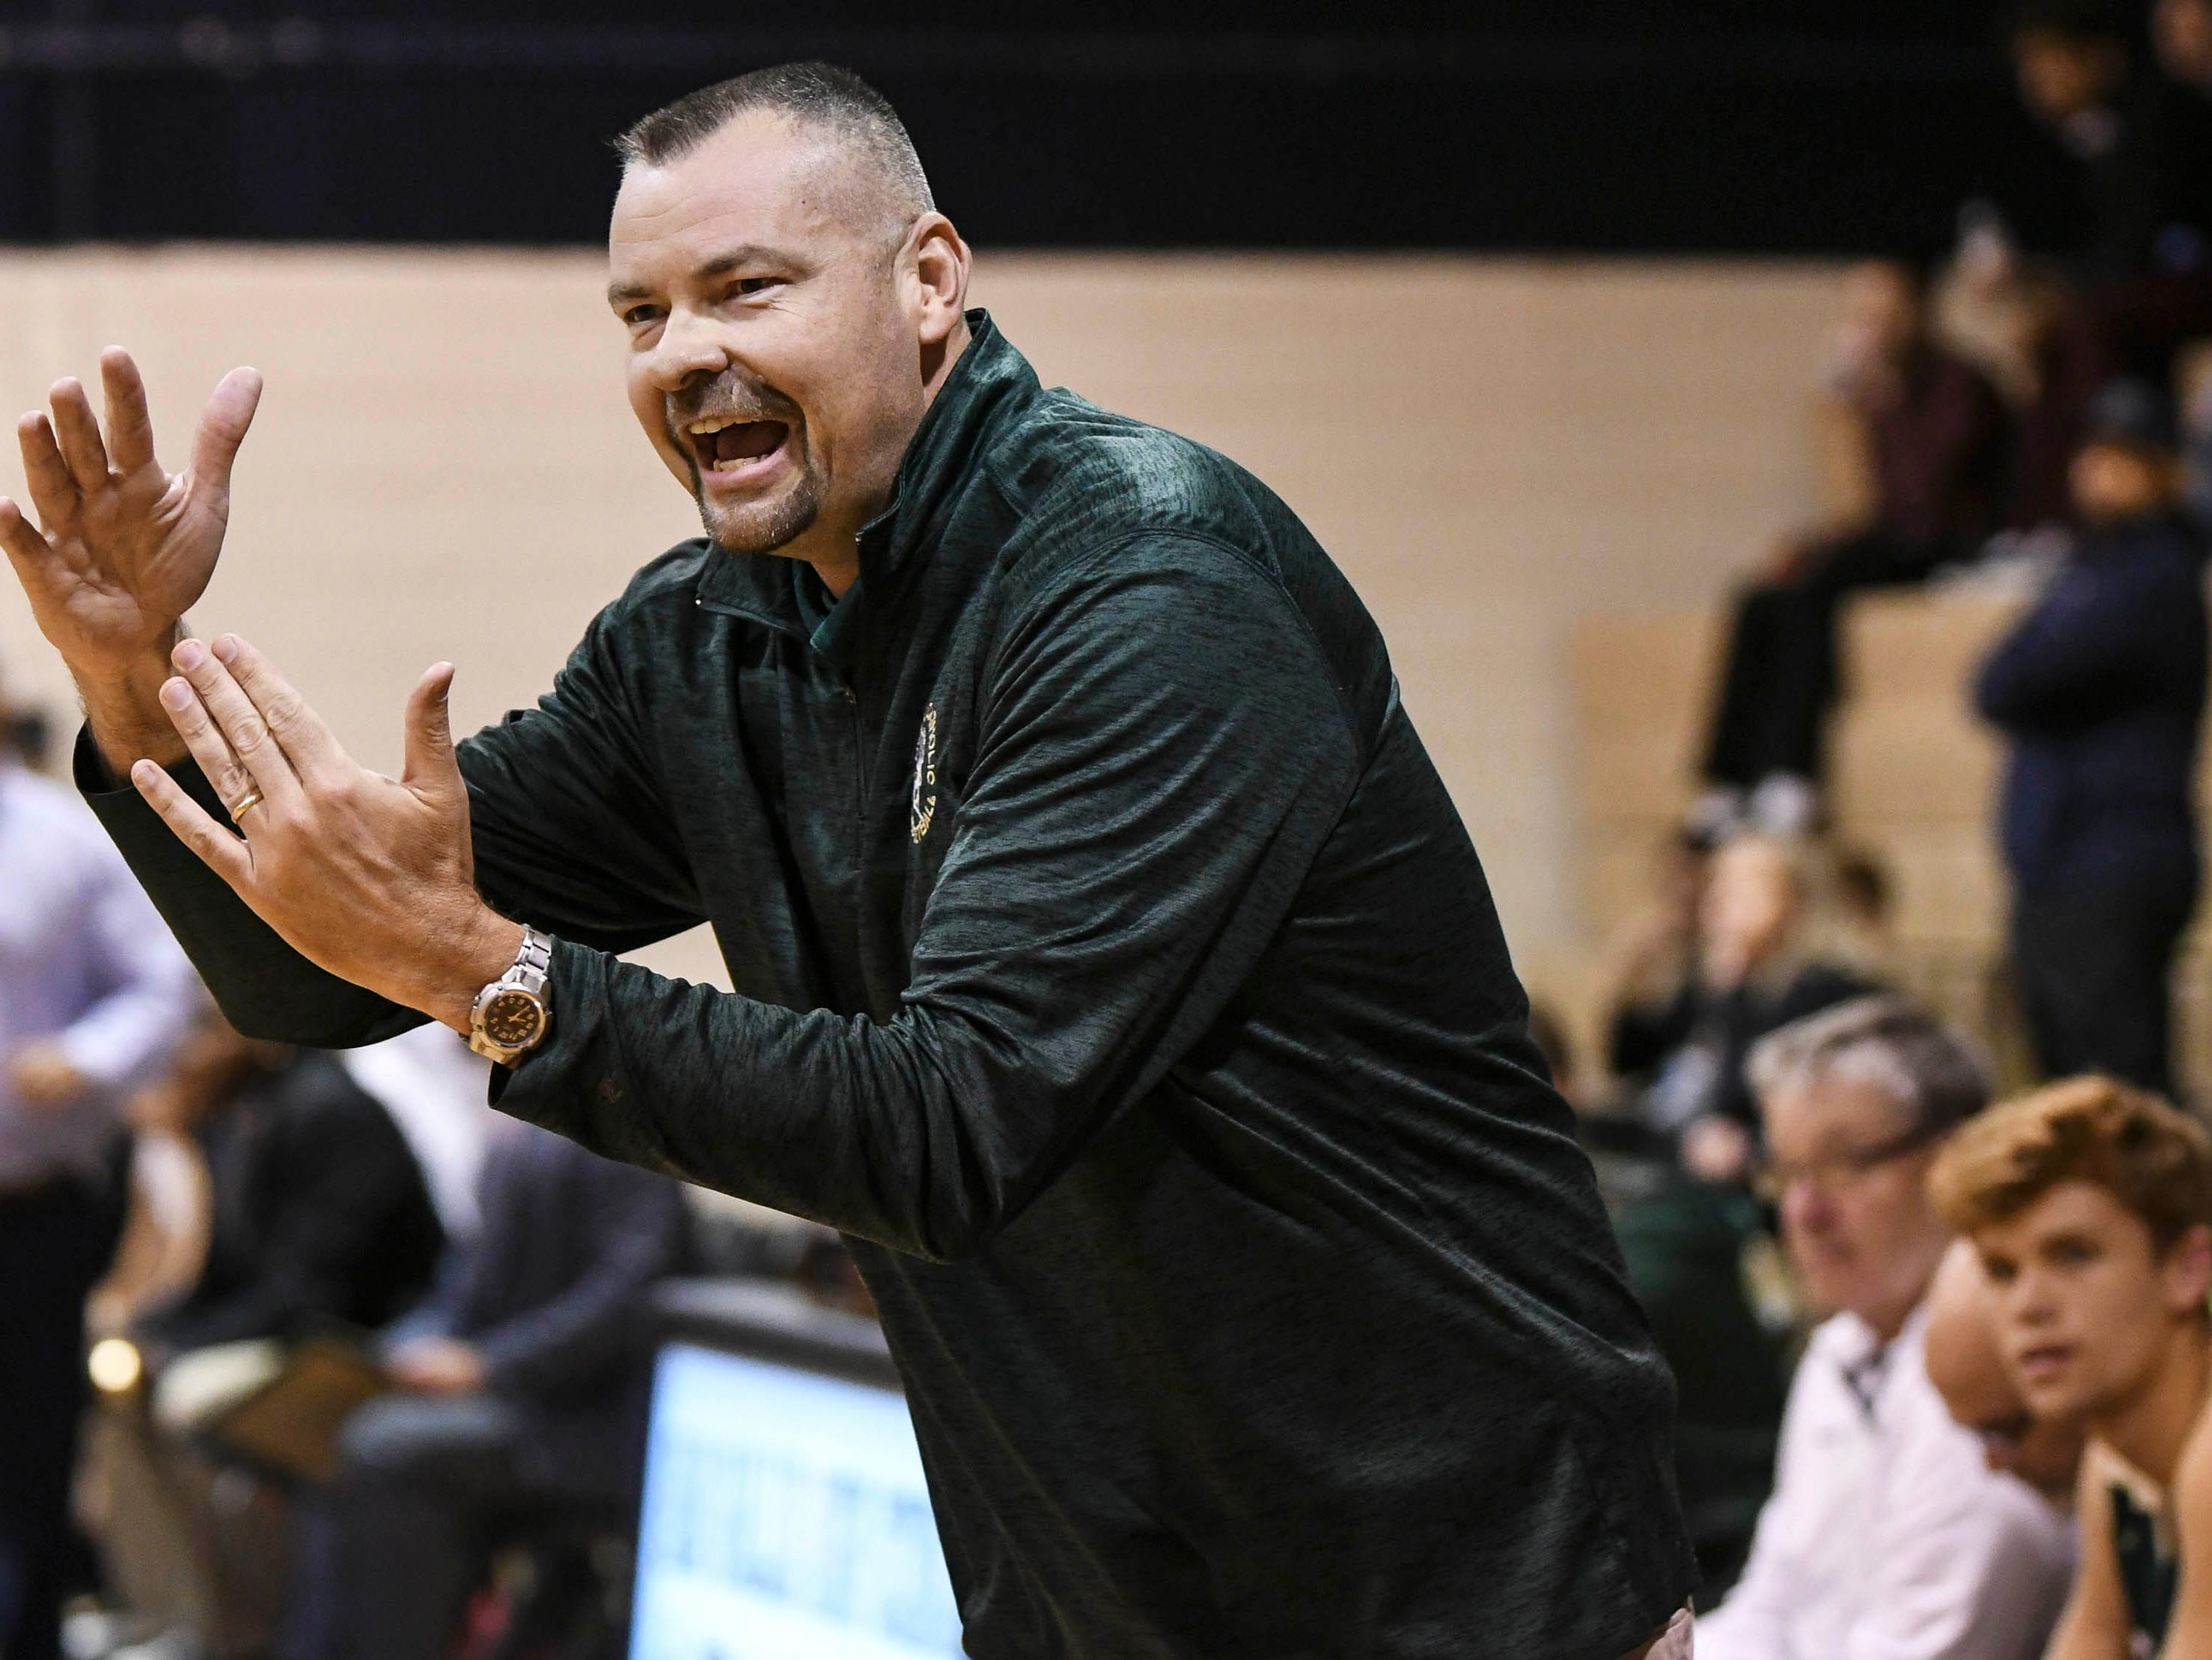 MCC basketball head coach Brett Terry calls for a timeout during Wednesday's game at Eau Gallie High